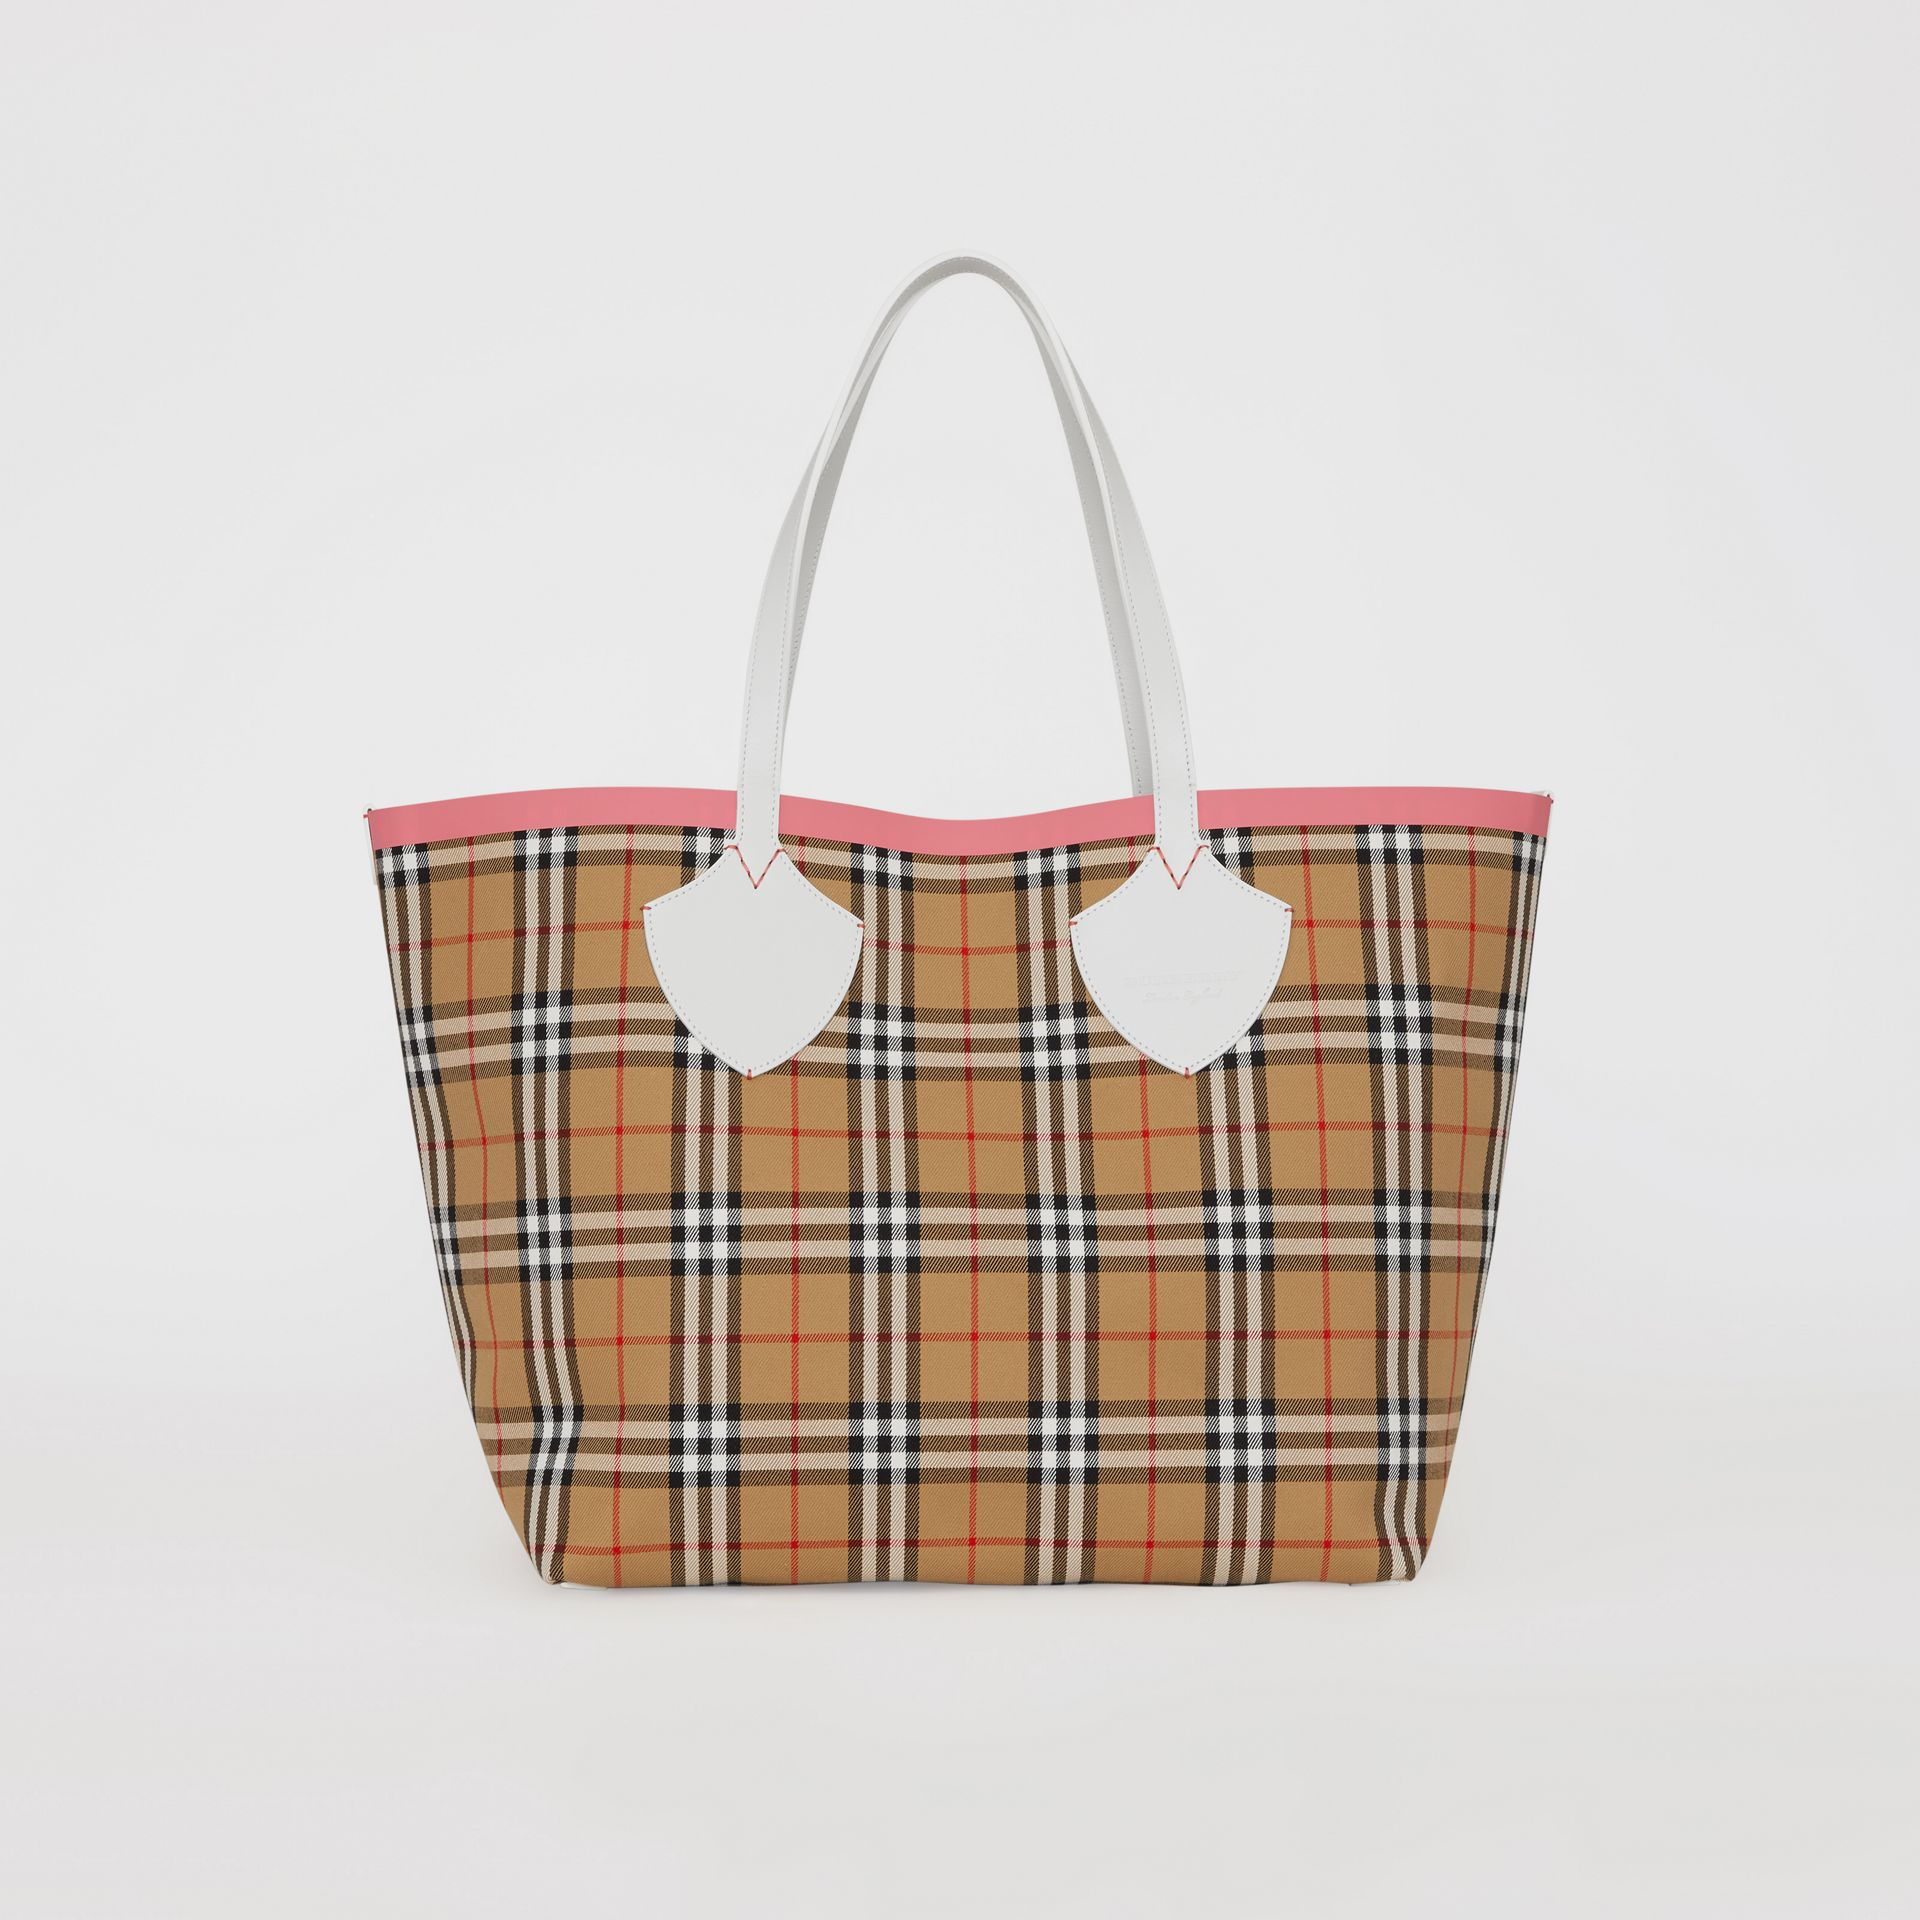 Sac tote The Giant réversible à motif Vintage check (Blanc Craie/rose Corail Vif) - Femme | Burberry - photo de la galerie 0